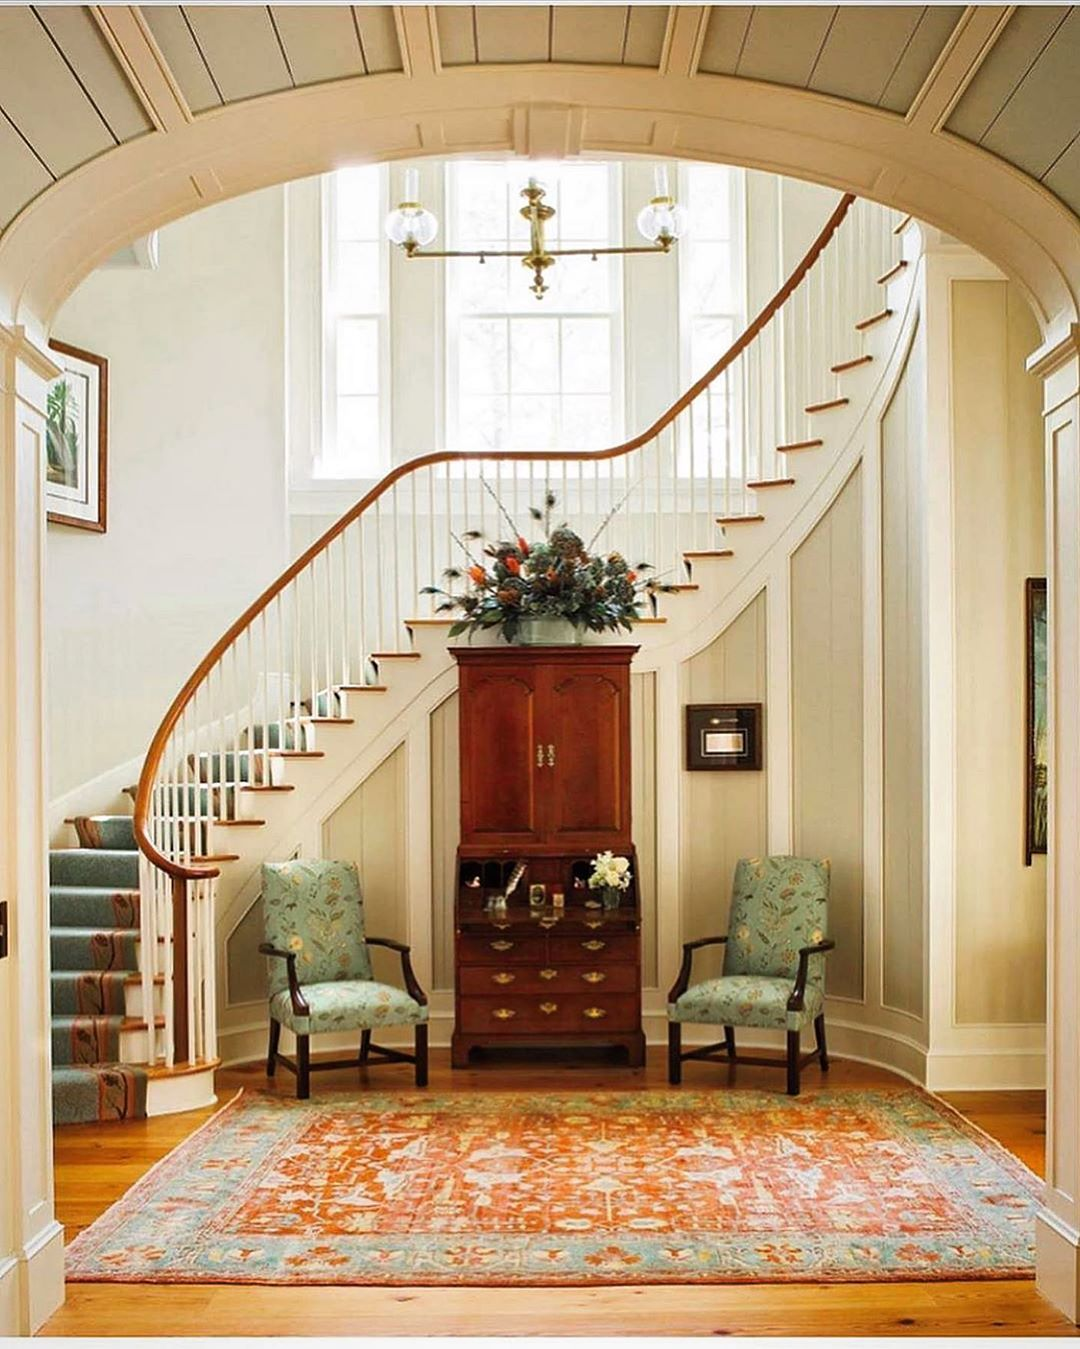 20 Excellent Traditional Staircases Design Ideas: Visit Our Website For The Latest Home Decor Trends